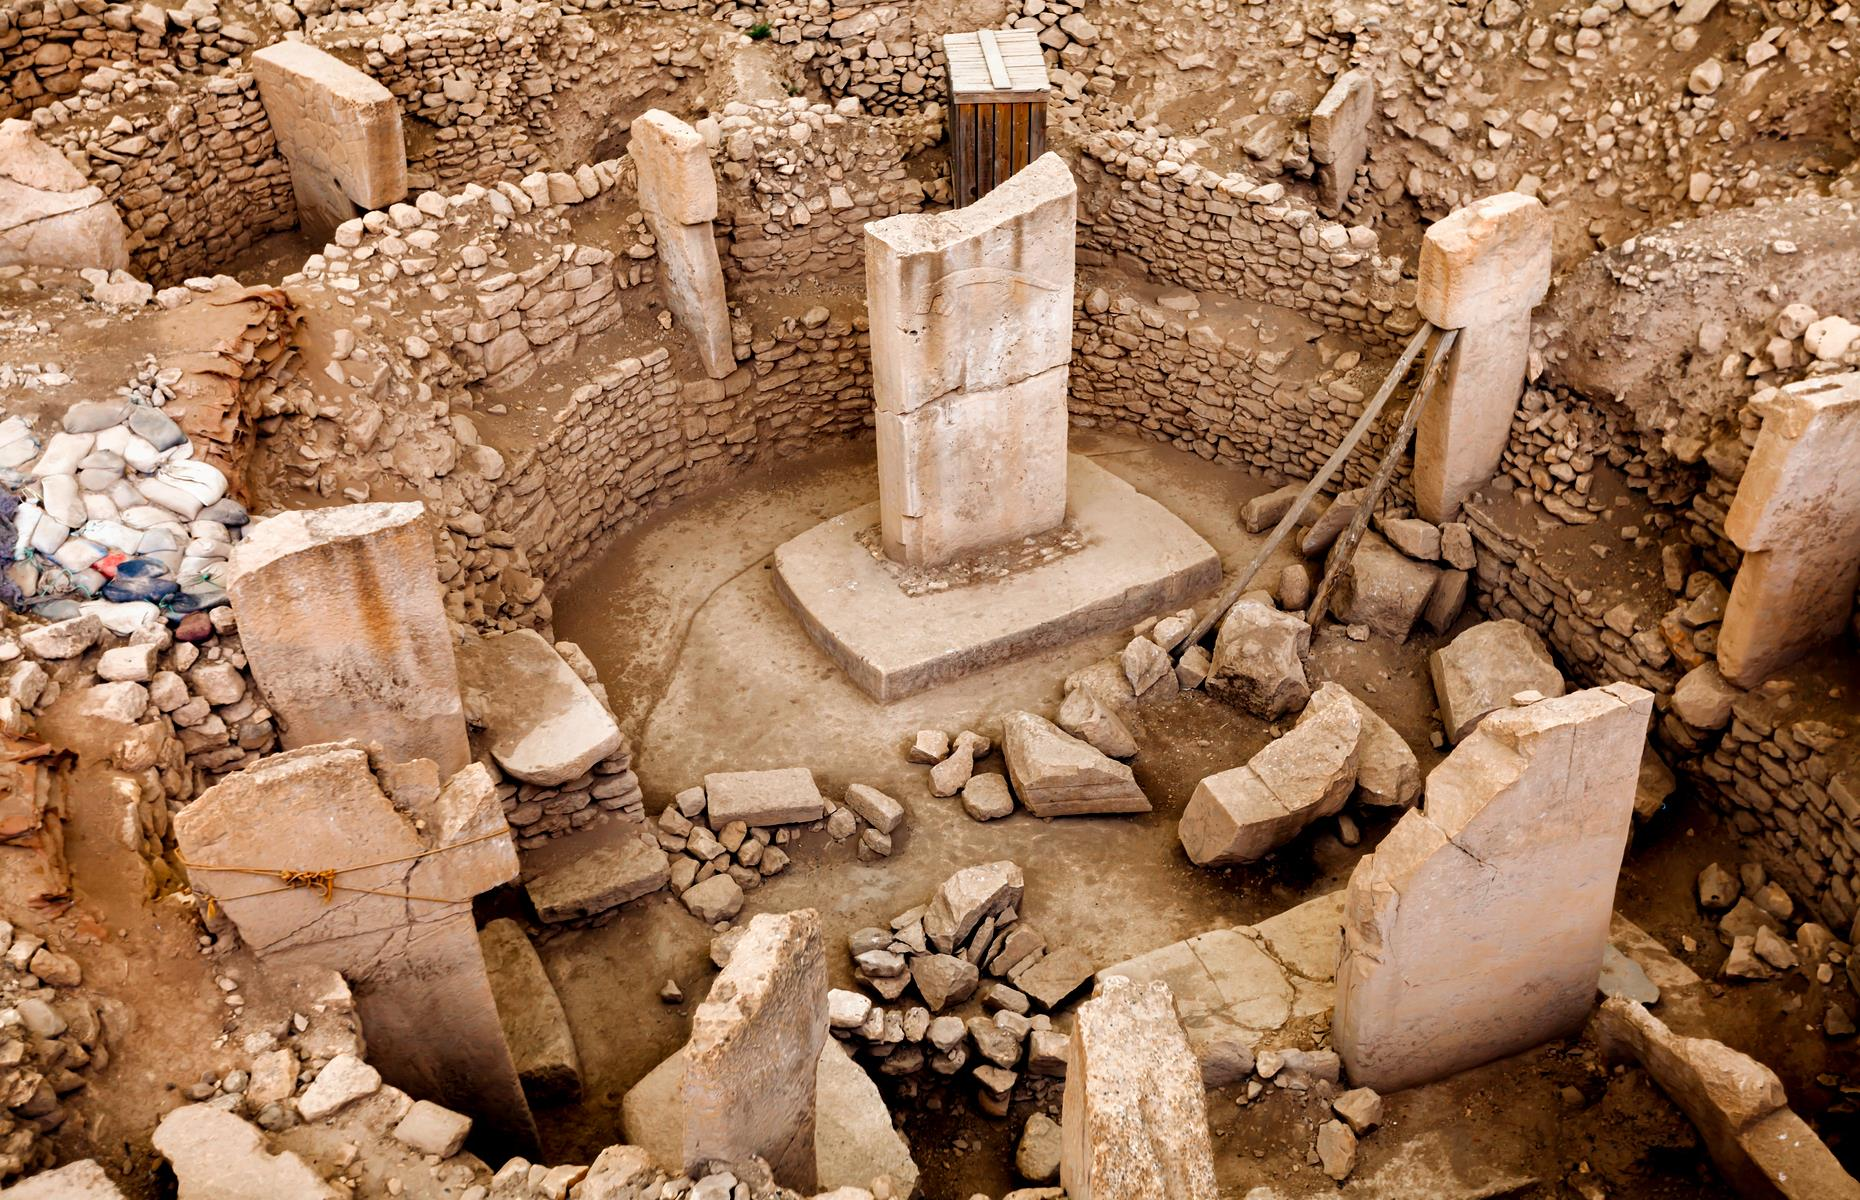 Slide 32 of 50: Widely touted as having the world's oldest temple, the site of Göbekli Tepe in Turkey has its origins between 9,600 and 8,200 BC, dramatically predating better-known wonders, such as the revered Pyramids of Giza. The plot is made up of limestone megaliths and is said to have never been inhabited. Instead, experts believe Göbekli Tepe had a ceremonial or funereal purpose, and ancient peoples would come here to worship. Since the site was originally written off as a graveyard in the 1960s, real excavation work only began in the early 1990s. This means there's still much to be uncovered.